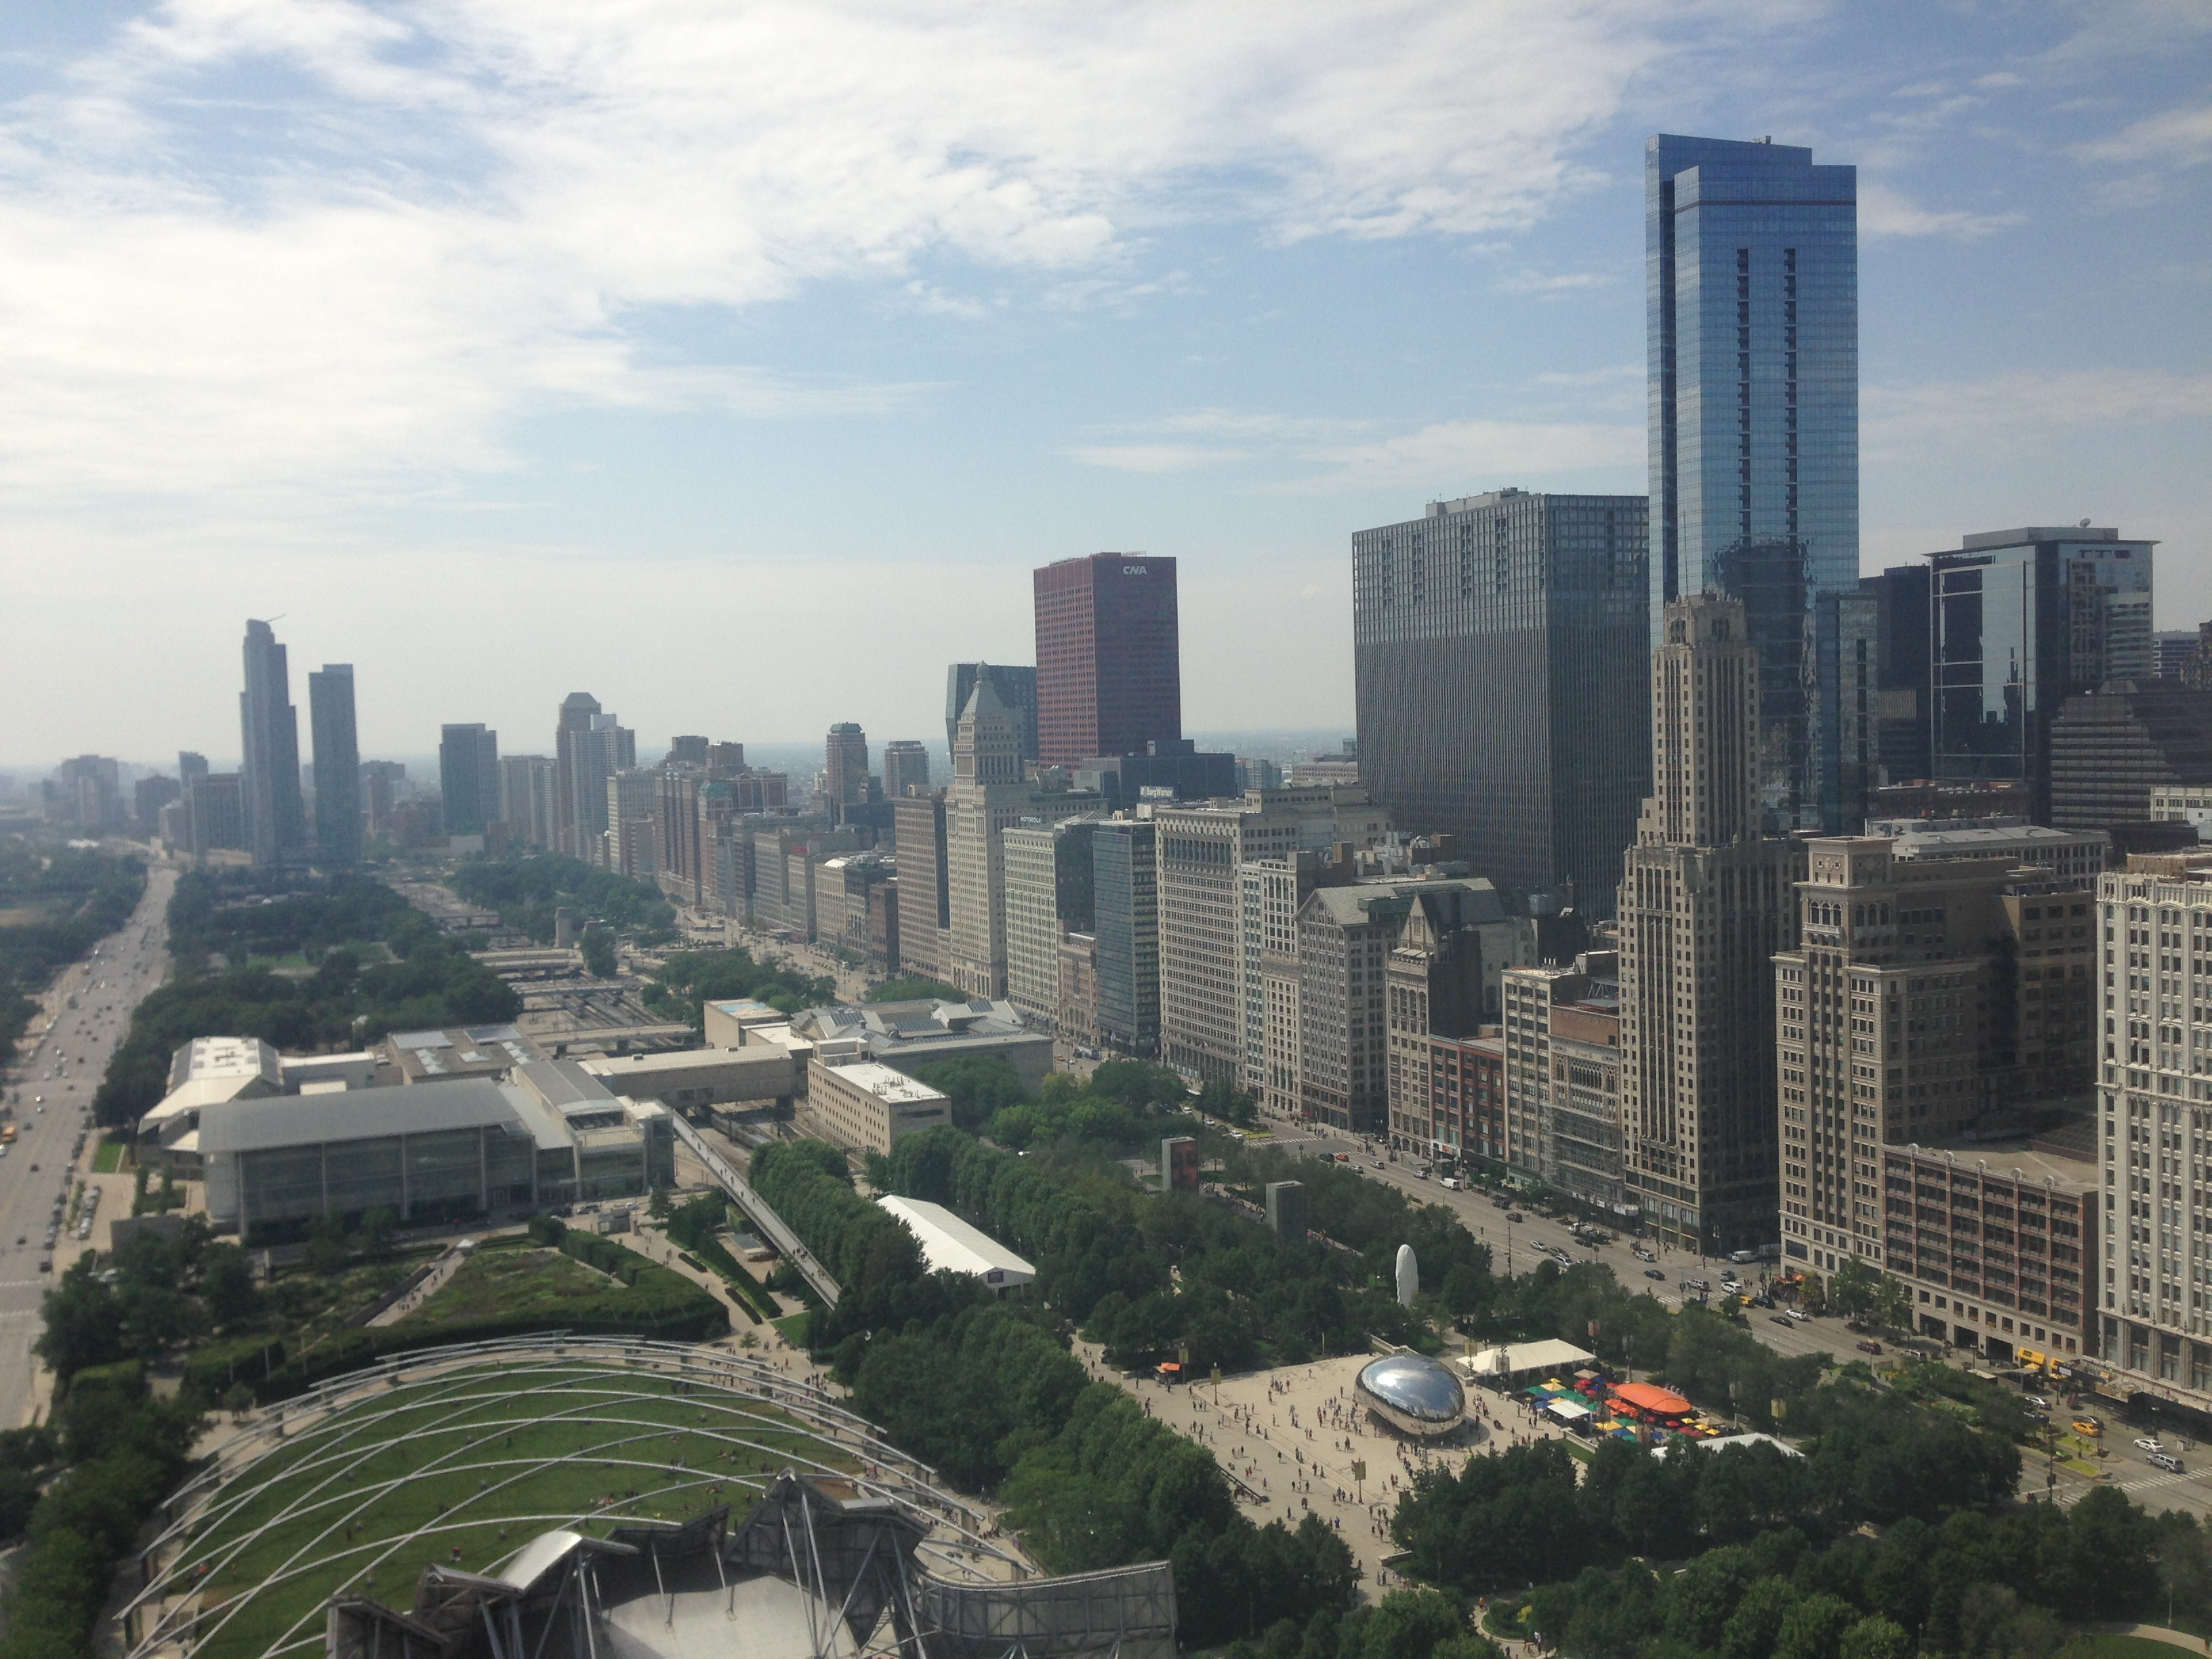 overlooking Millennium Park, Chicago, Illinois